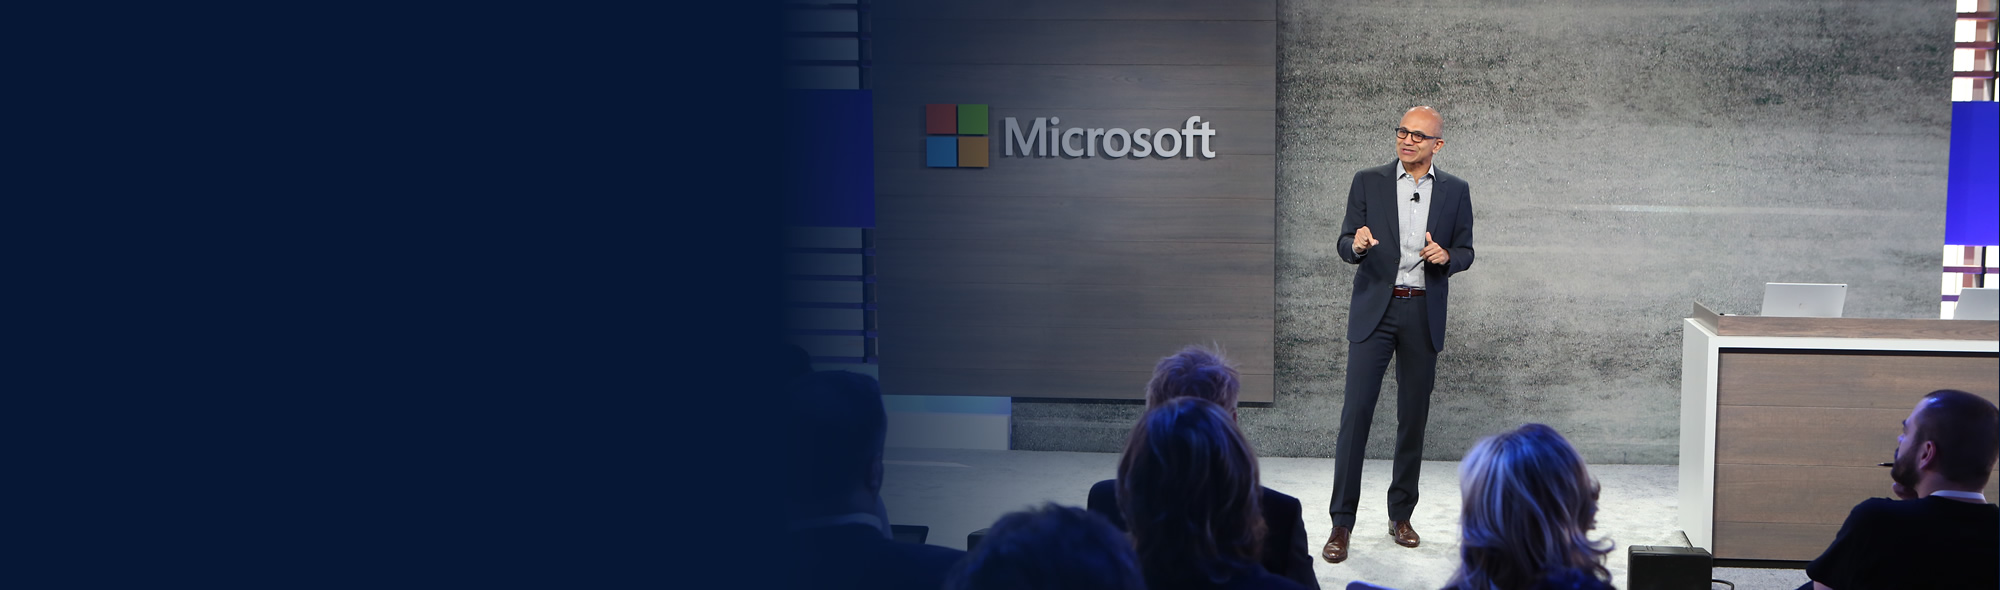 Satya Nadella speaking at Microsoft data driven event.